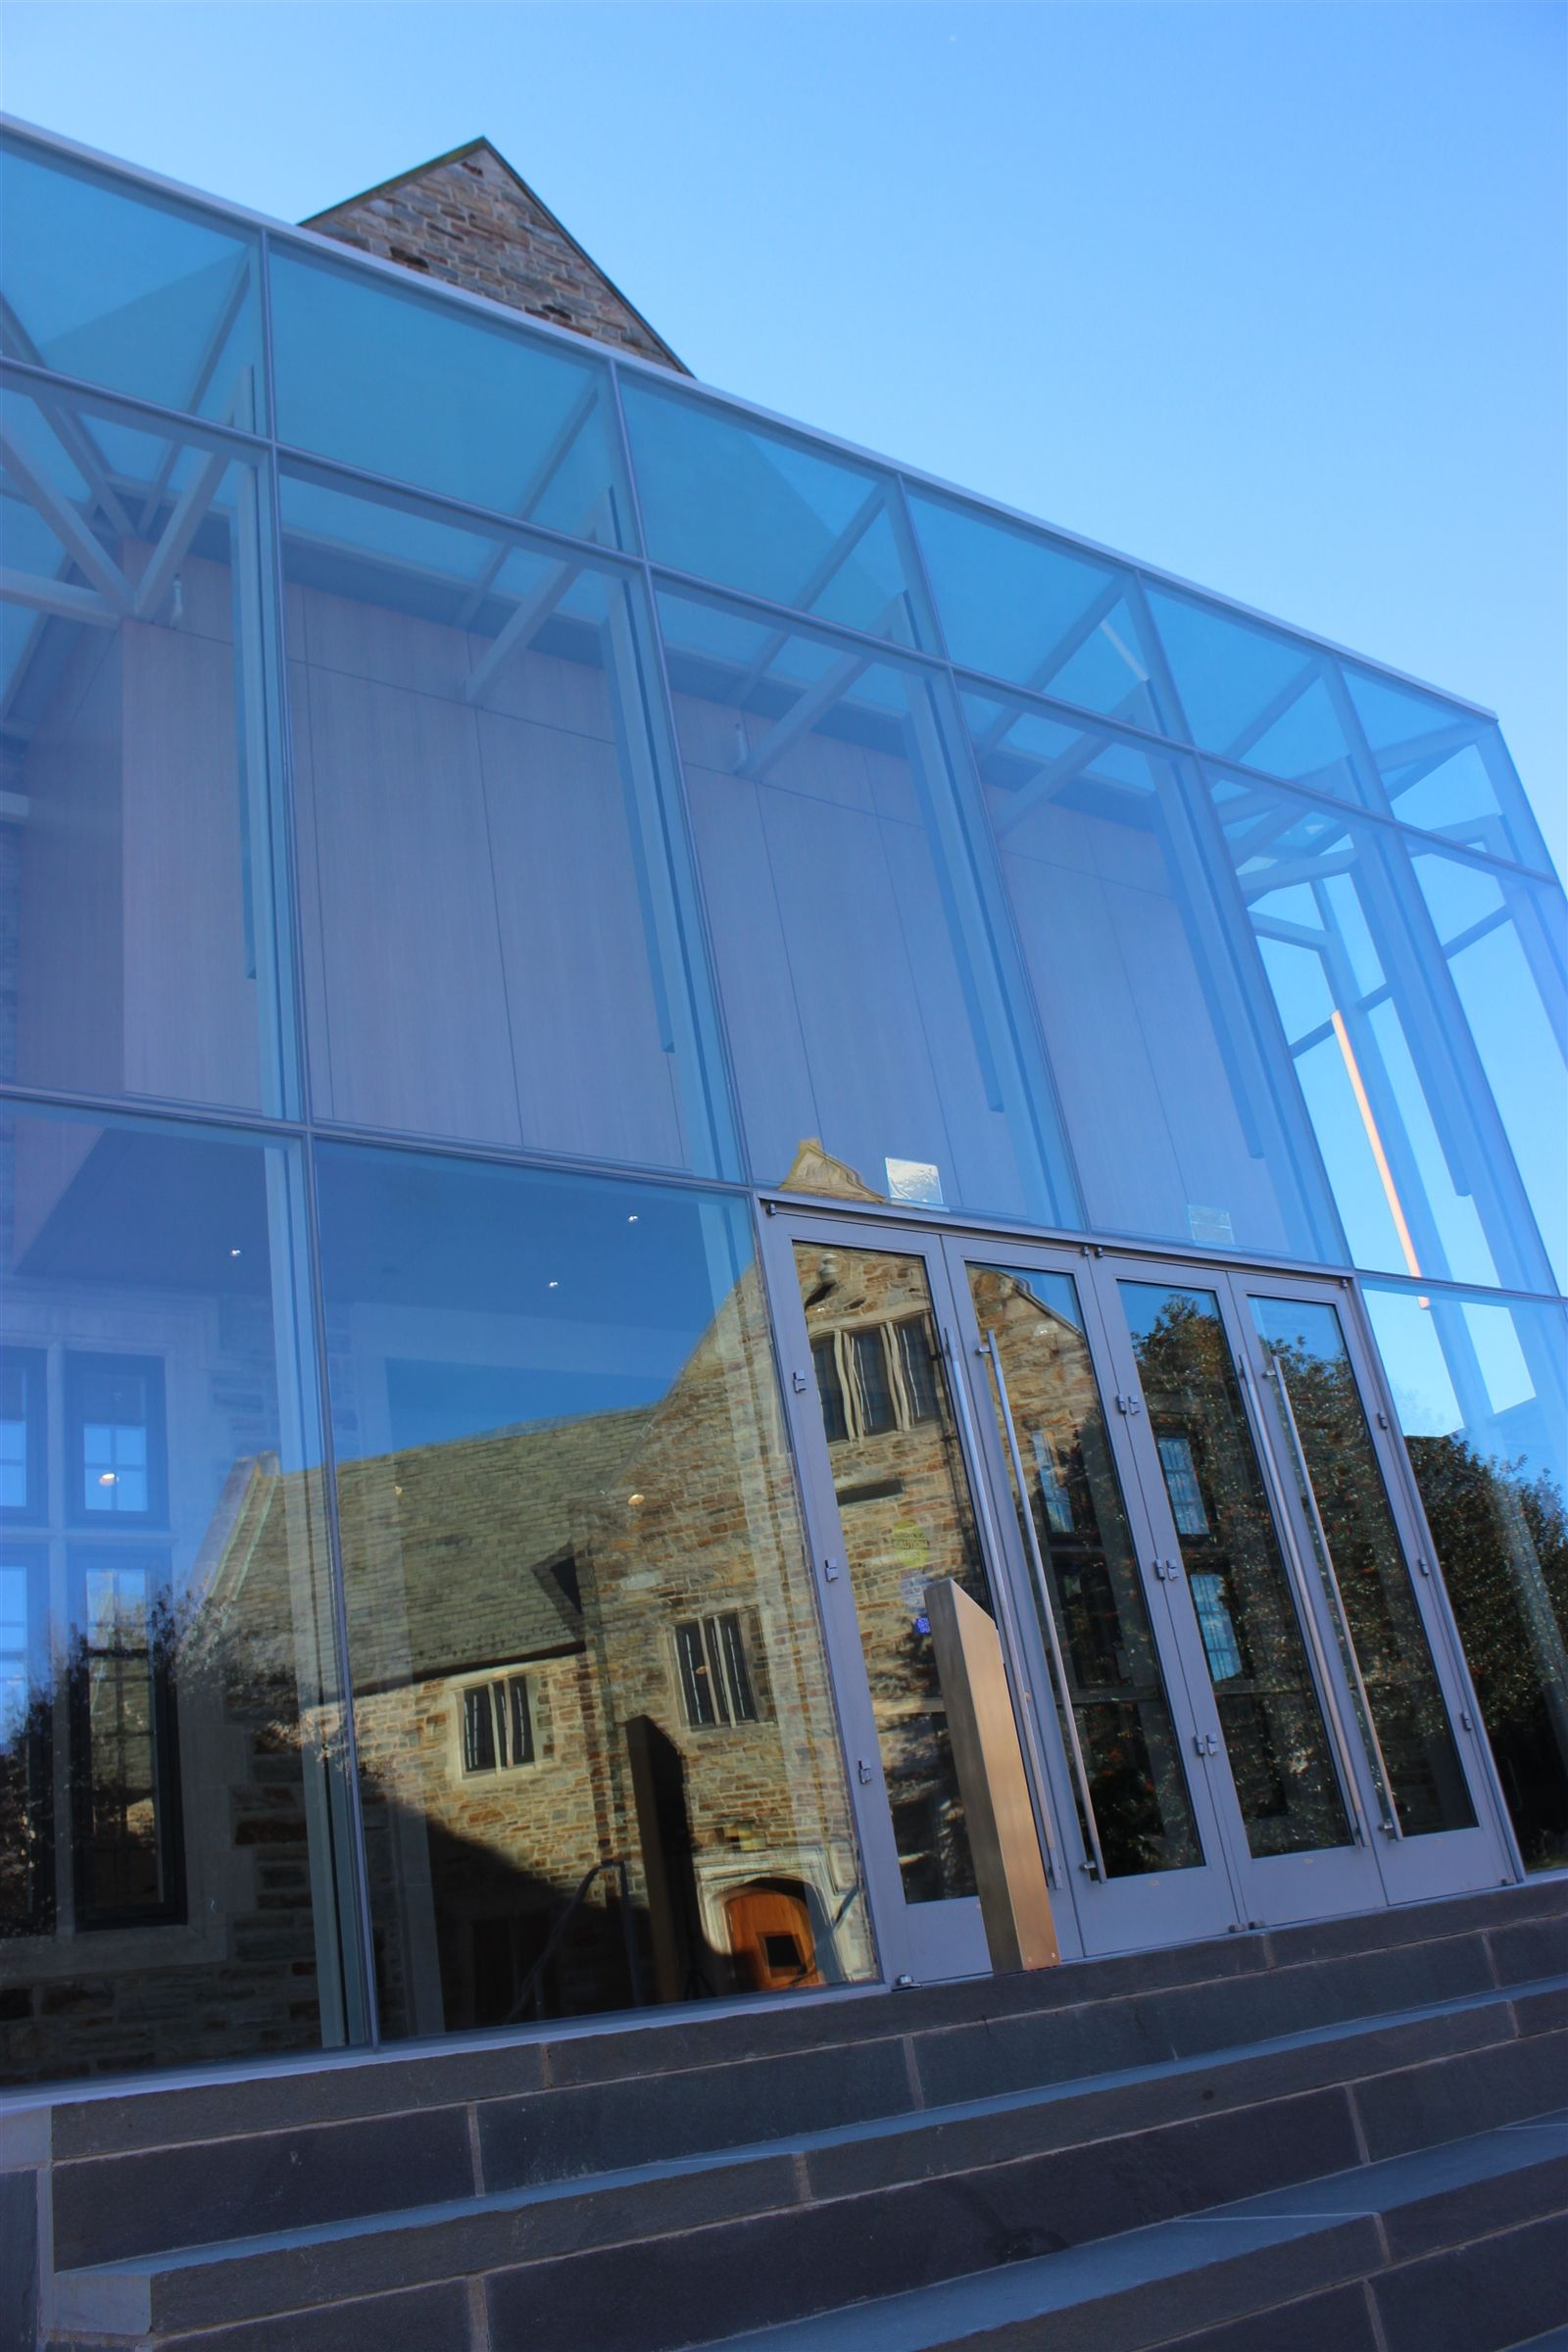 Upper School Building reflected in the Glass Atrium